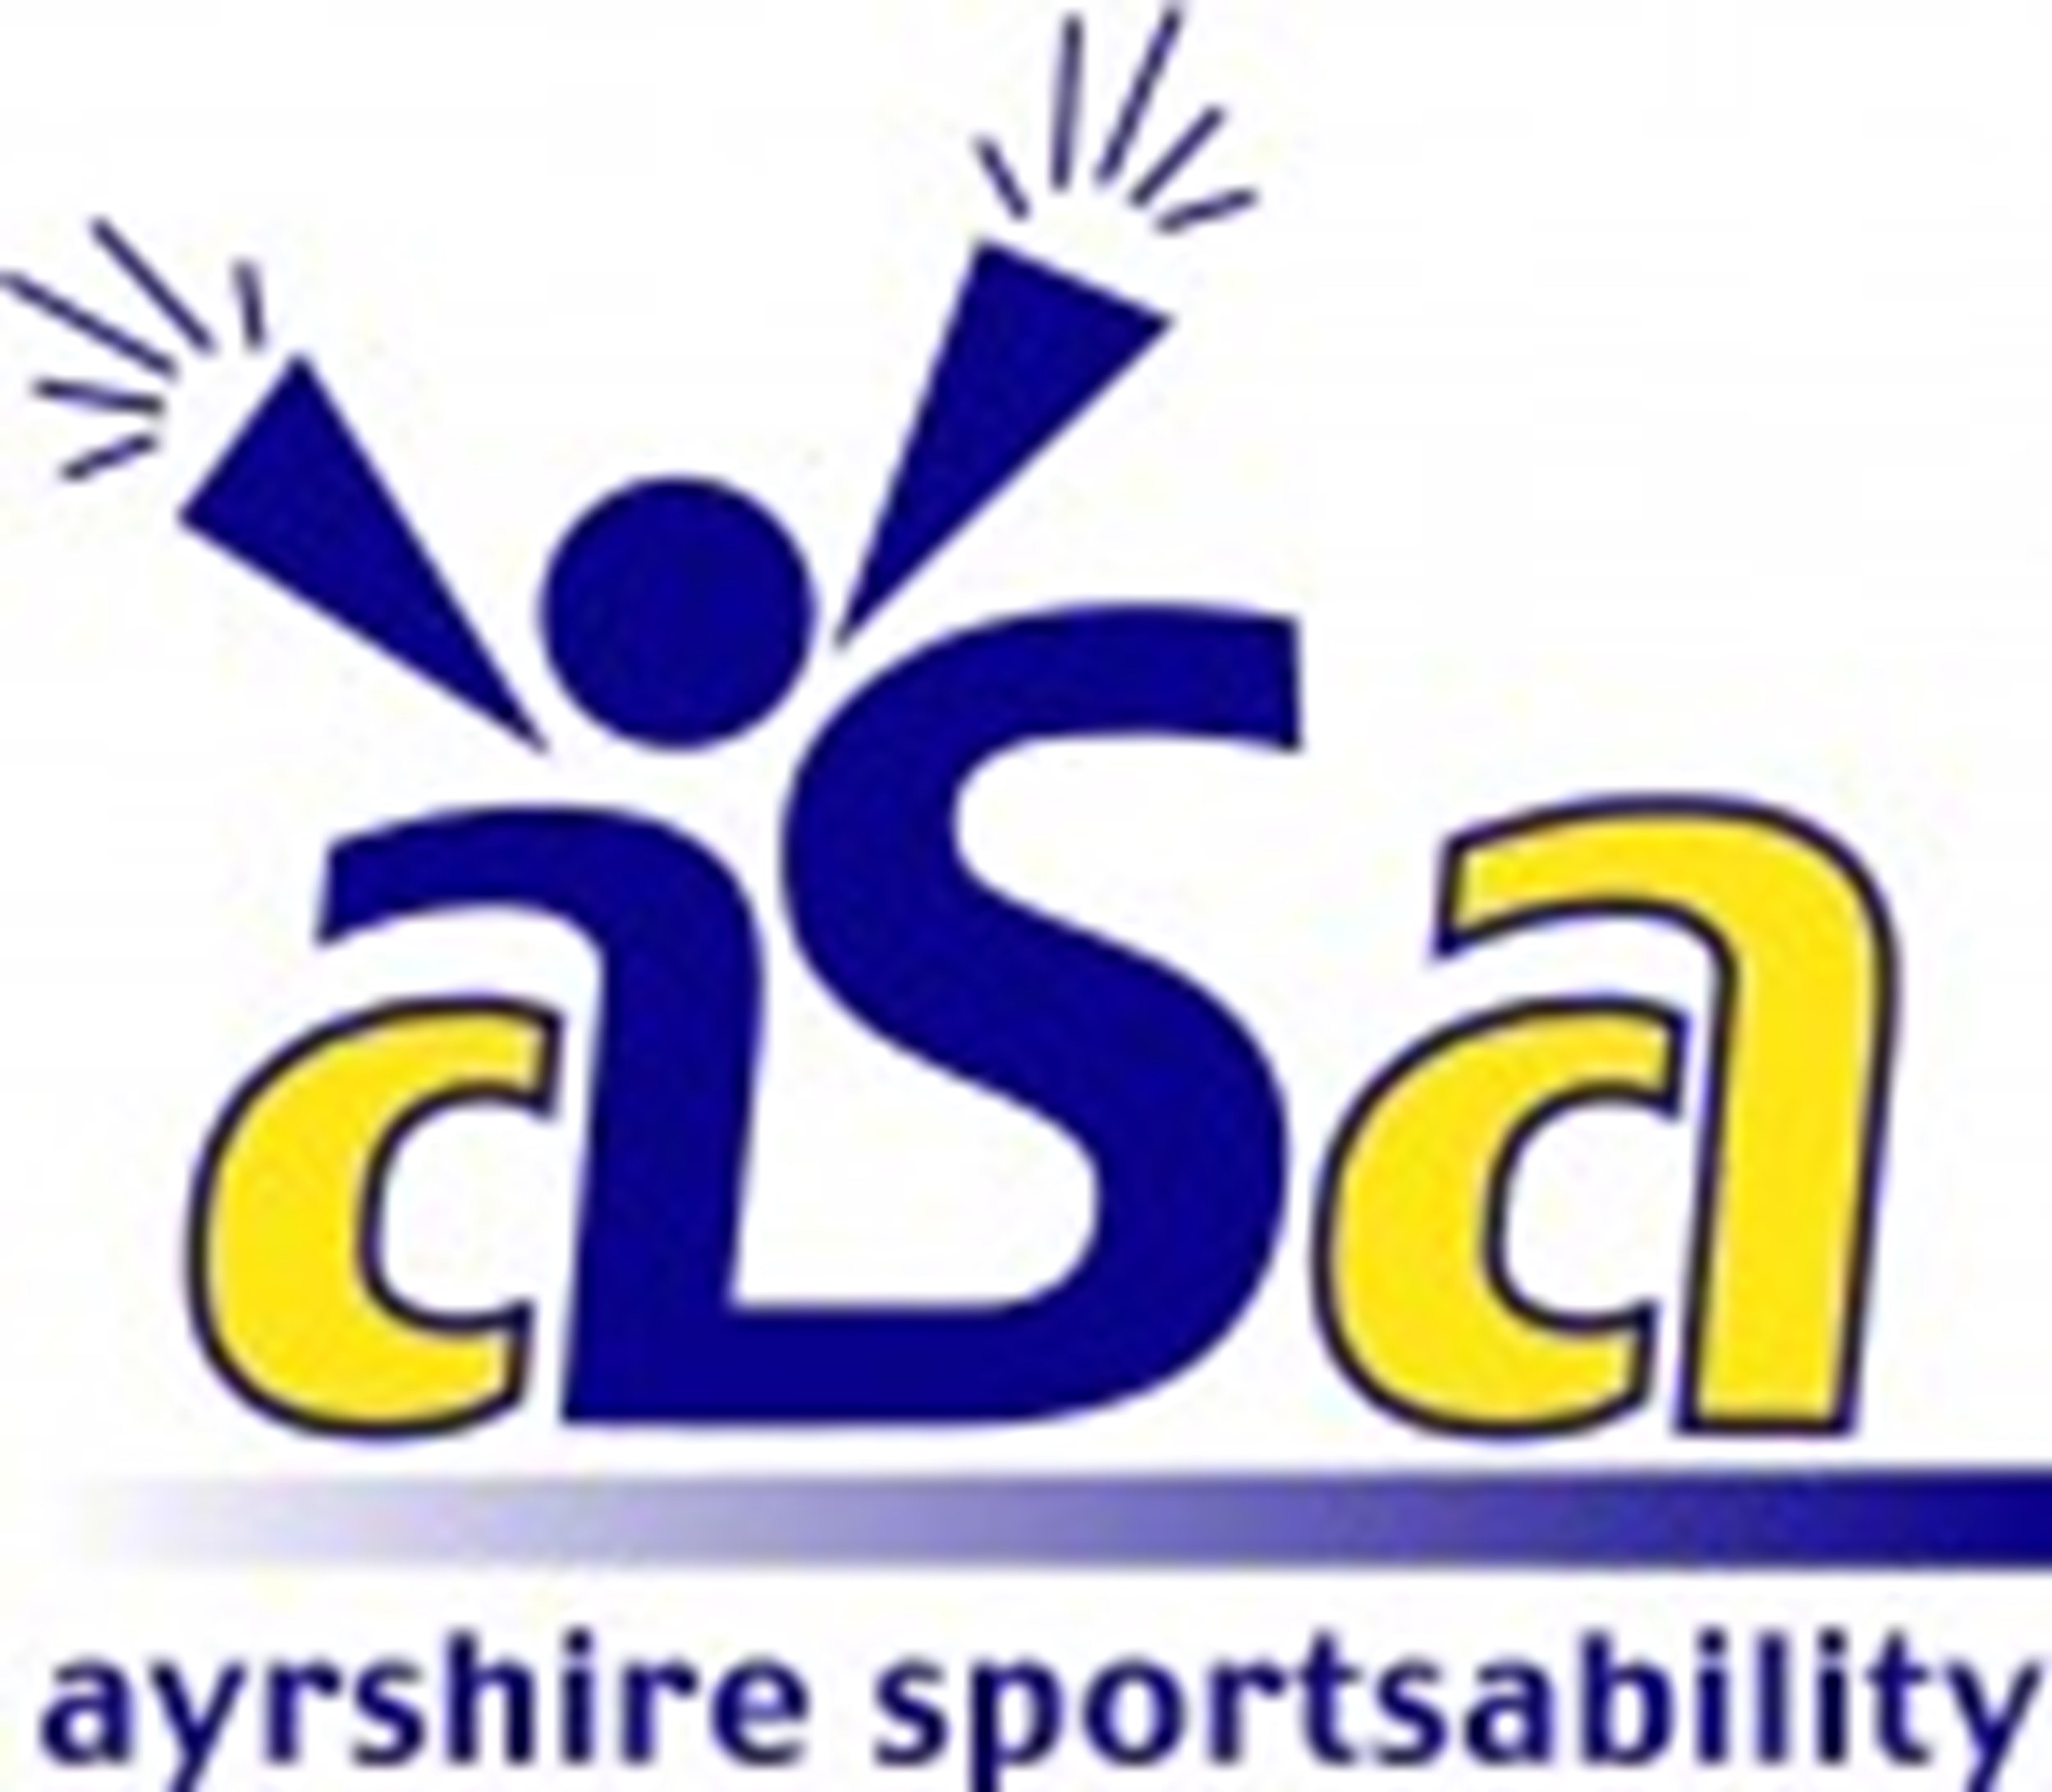 Ayrshire Sportsability Sunday Brunch